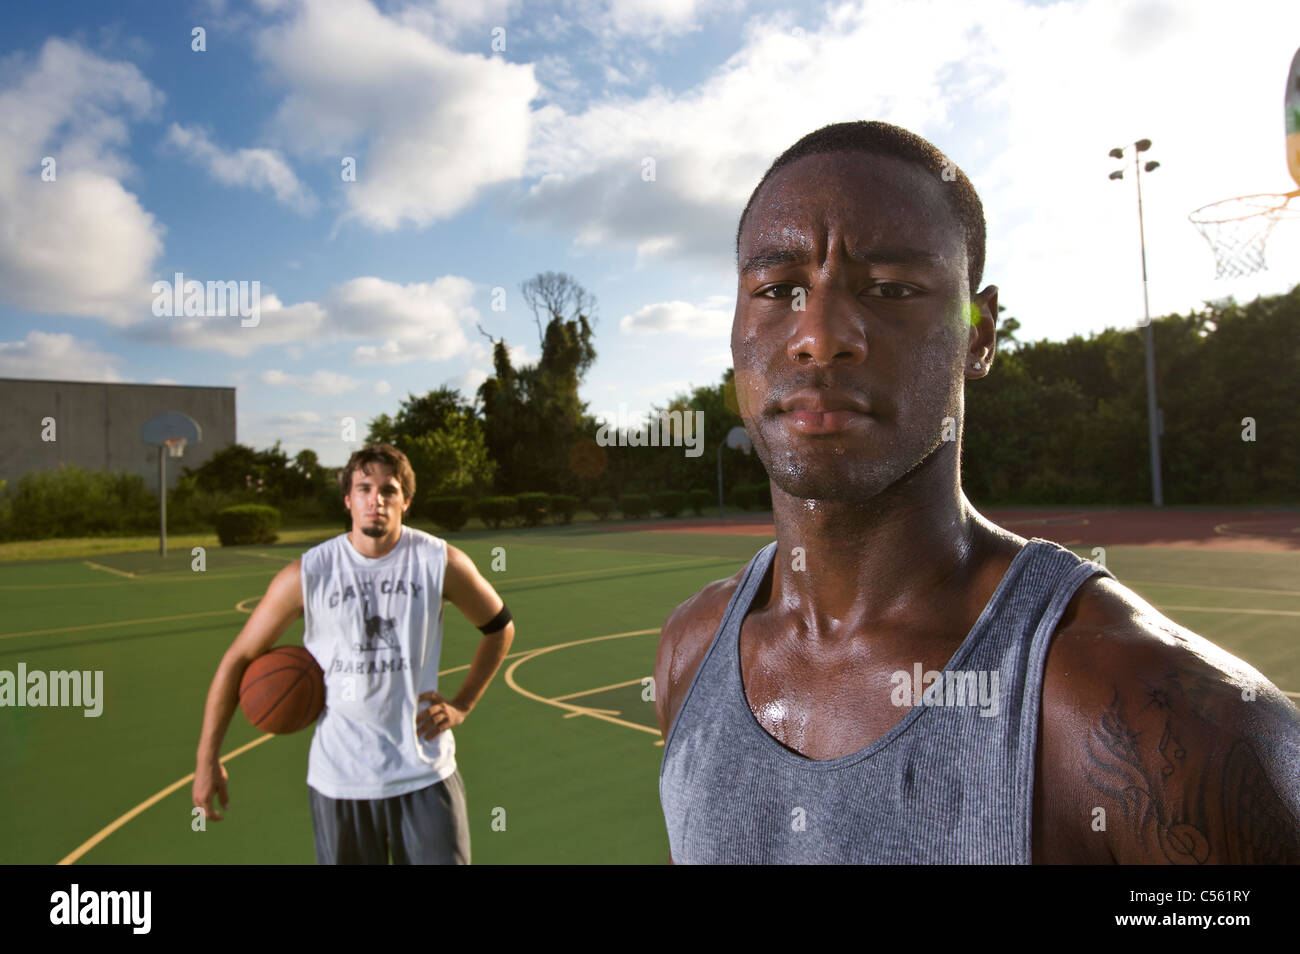 young males on outdoor court basketball - Stock Image